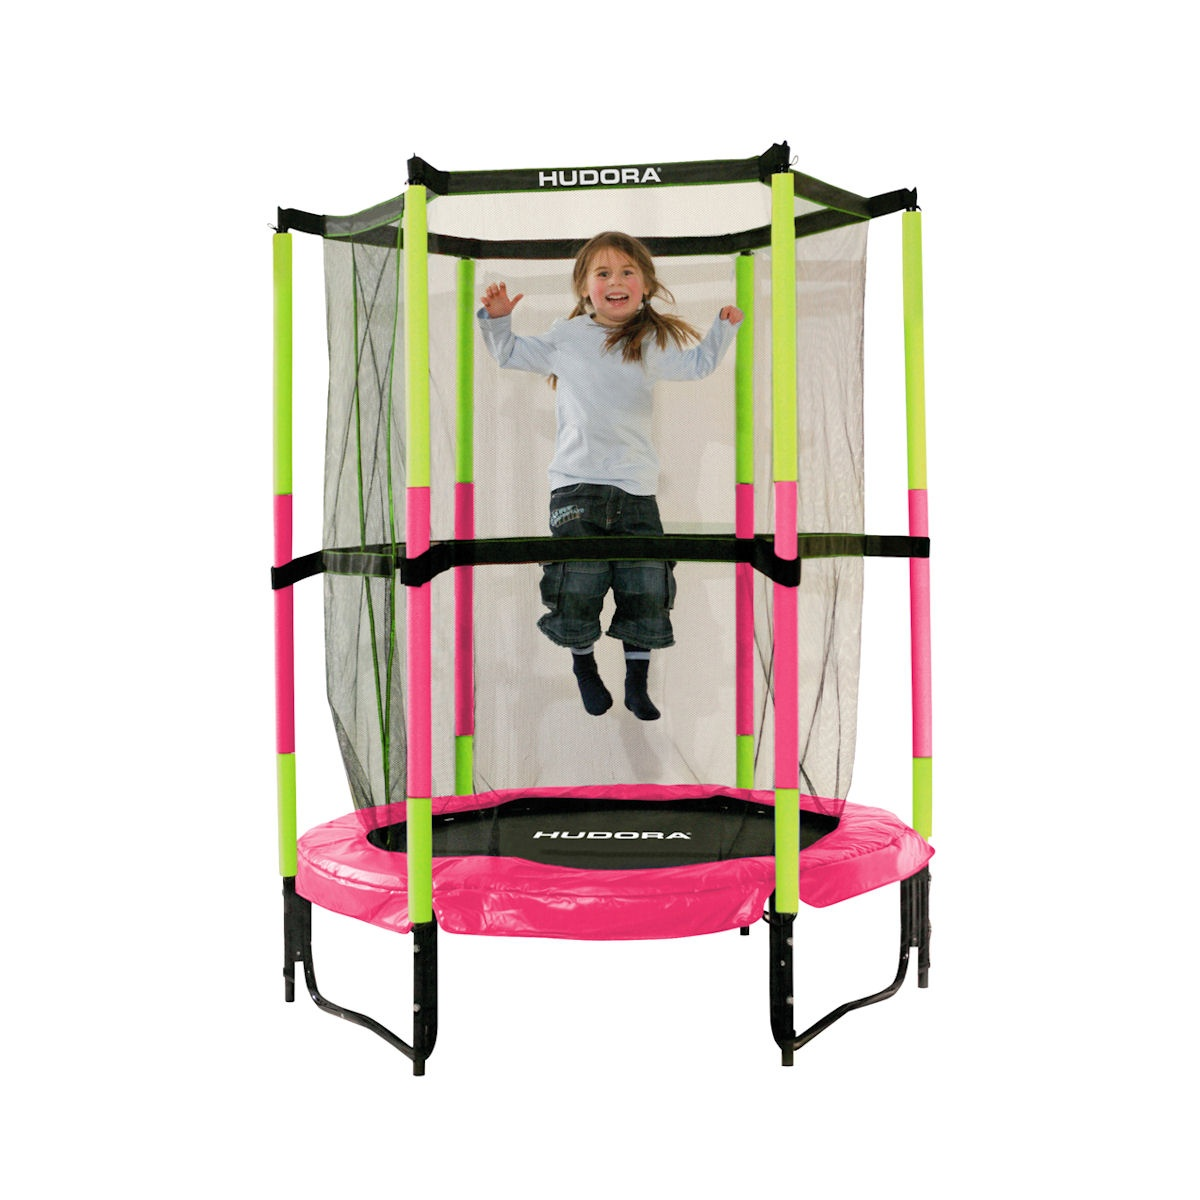 hudora trampolin jump in 140 cm indoor sicherheitstrampolin pink ebay. Black Bedroom Furniture Sets. Home Design Ideas